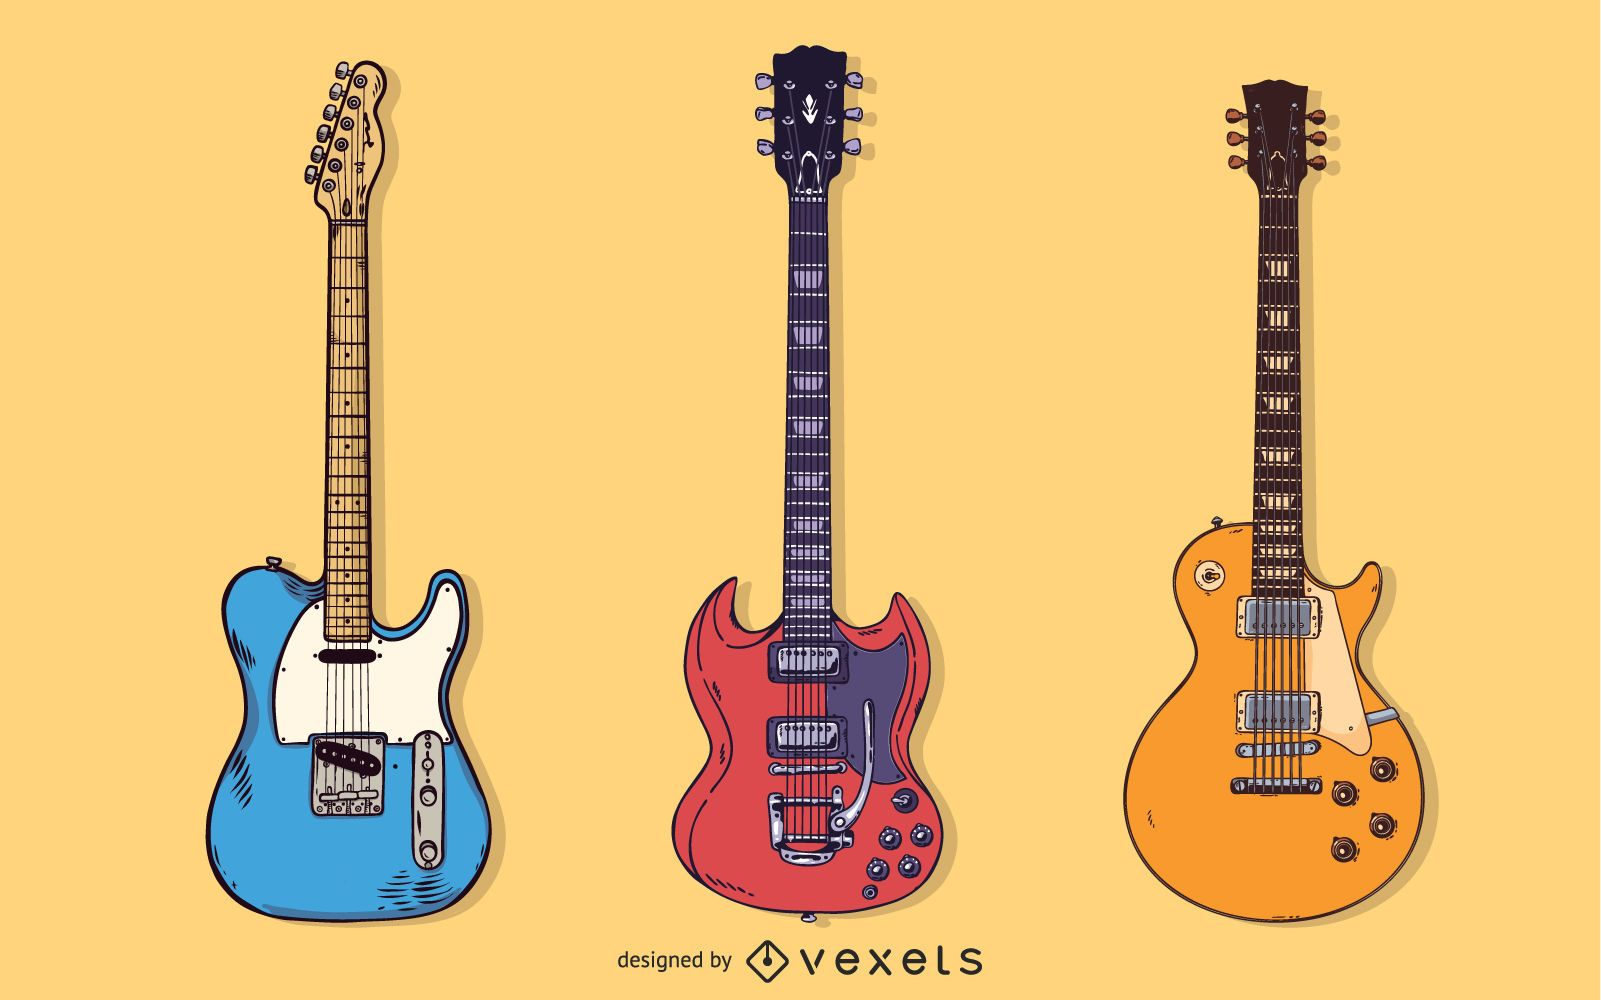 Guitar free vector pack - Different shape